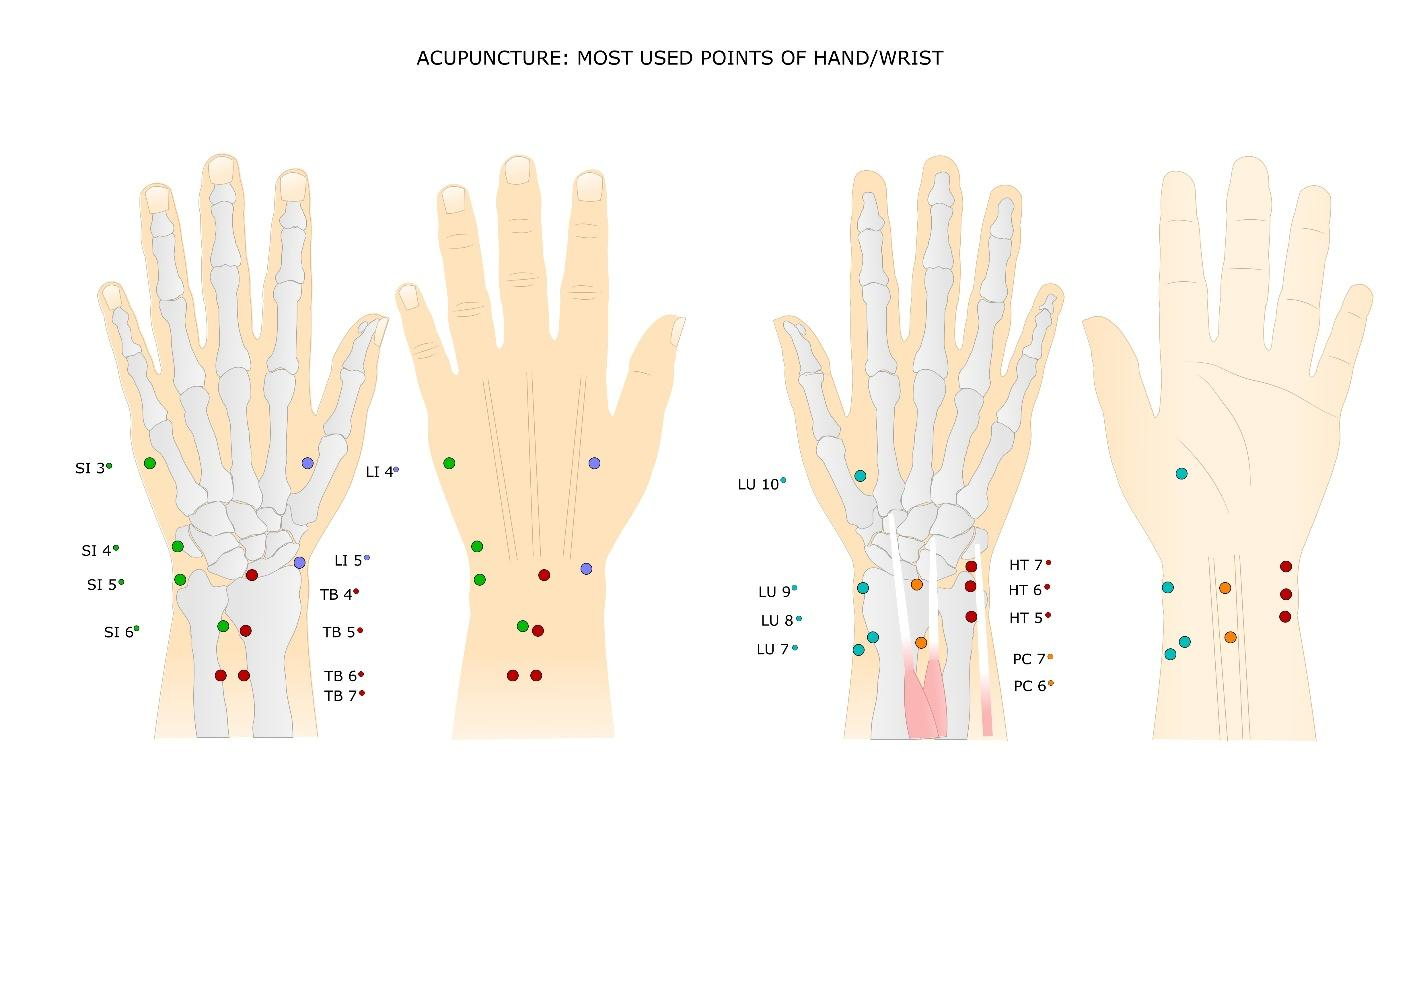 7 Acupuncture Points That Can Improve Your Life This ...